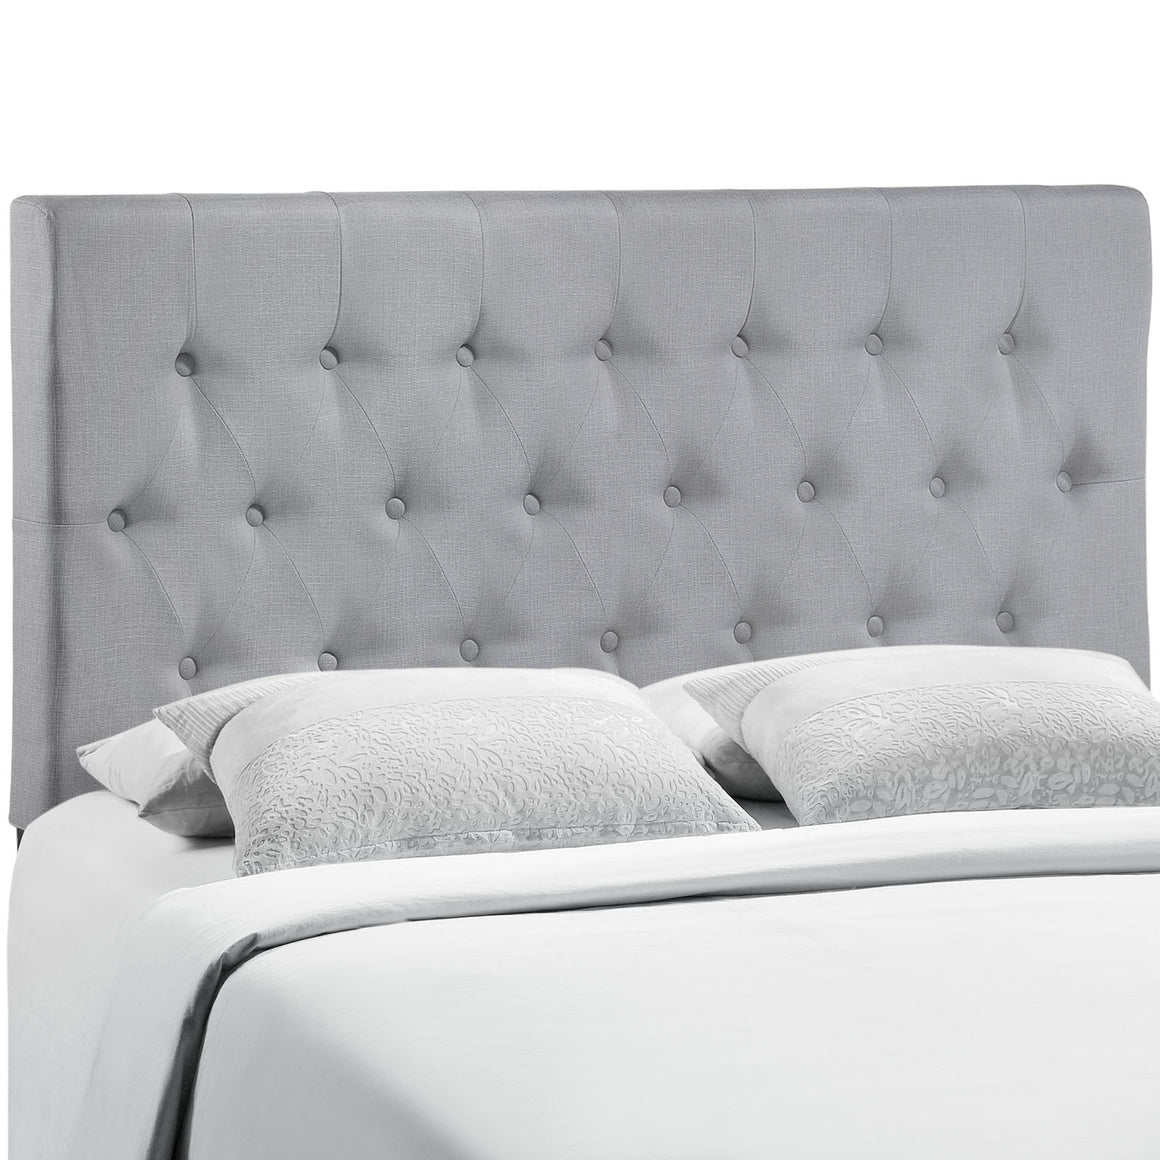 Clique King Headboard - taylor ray decor